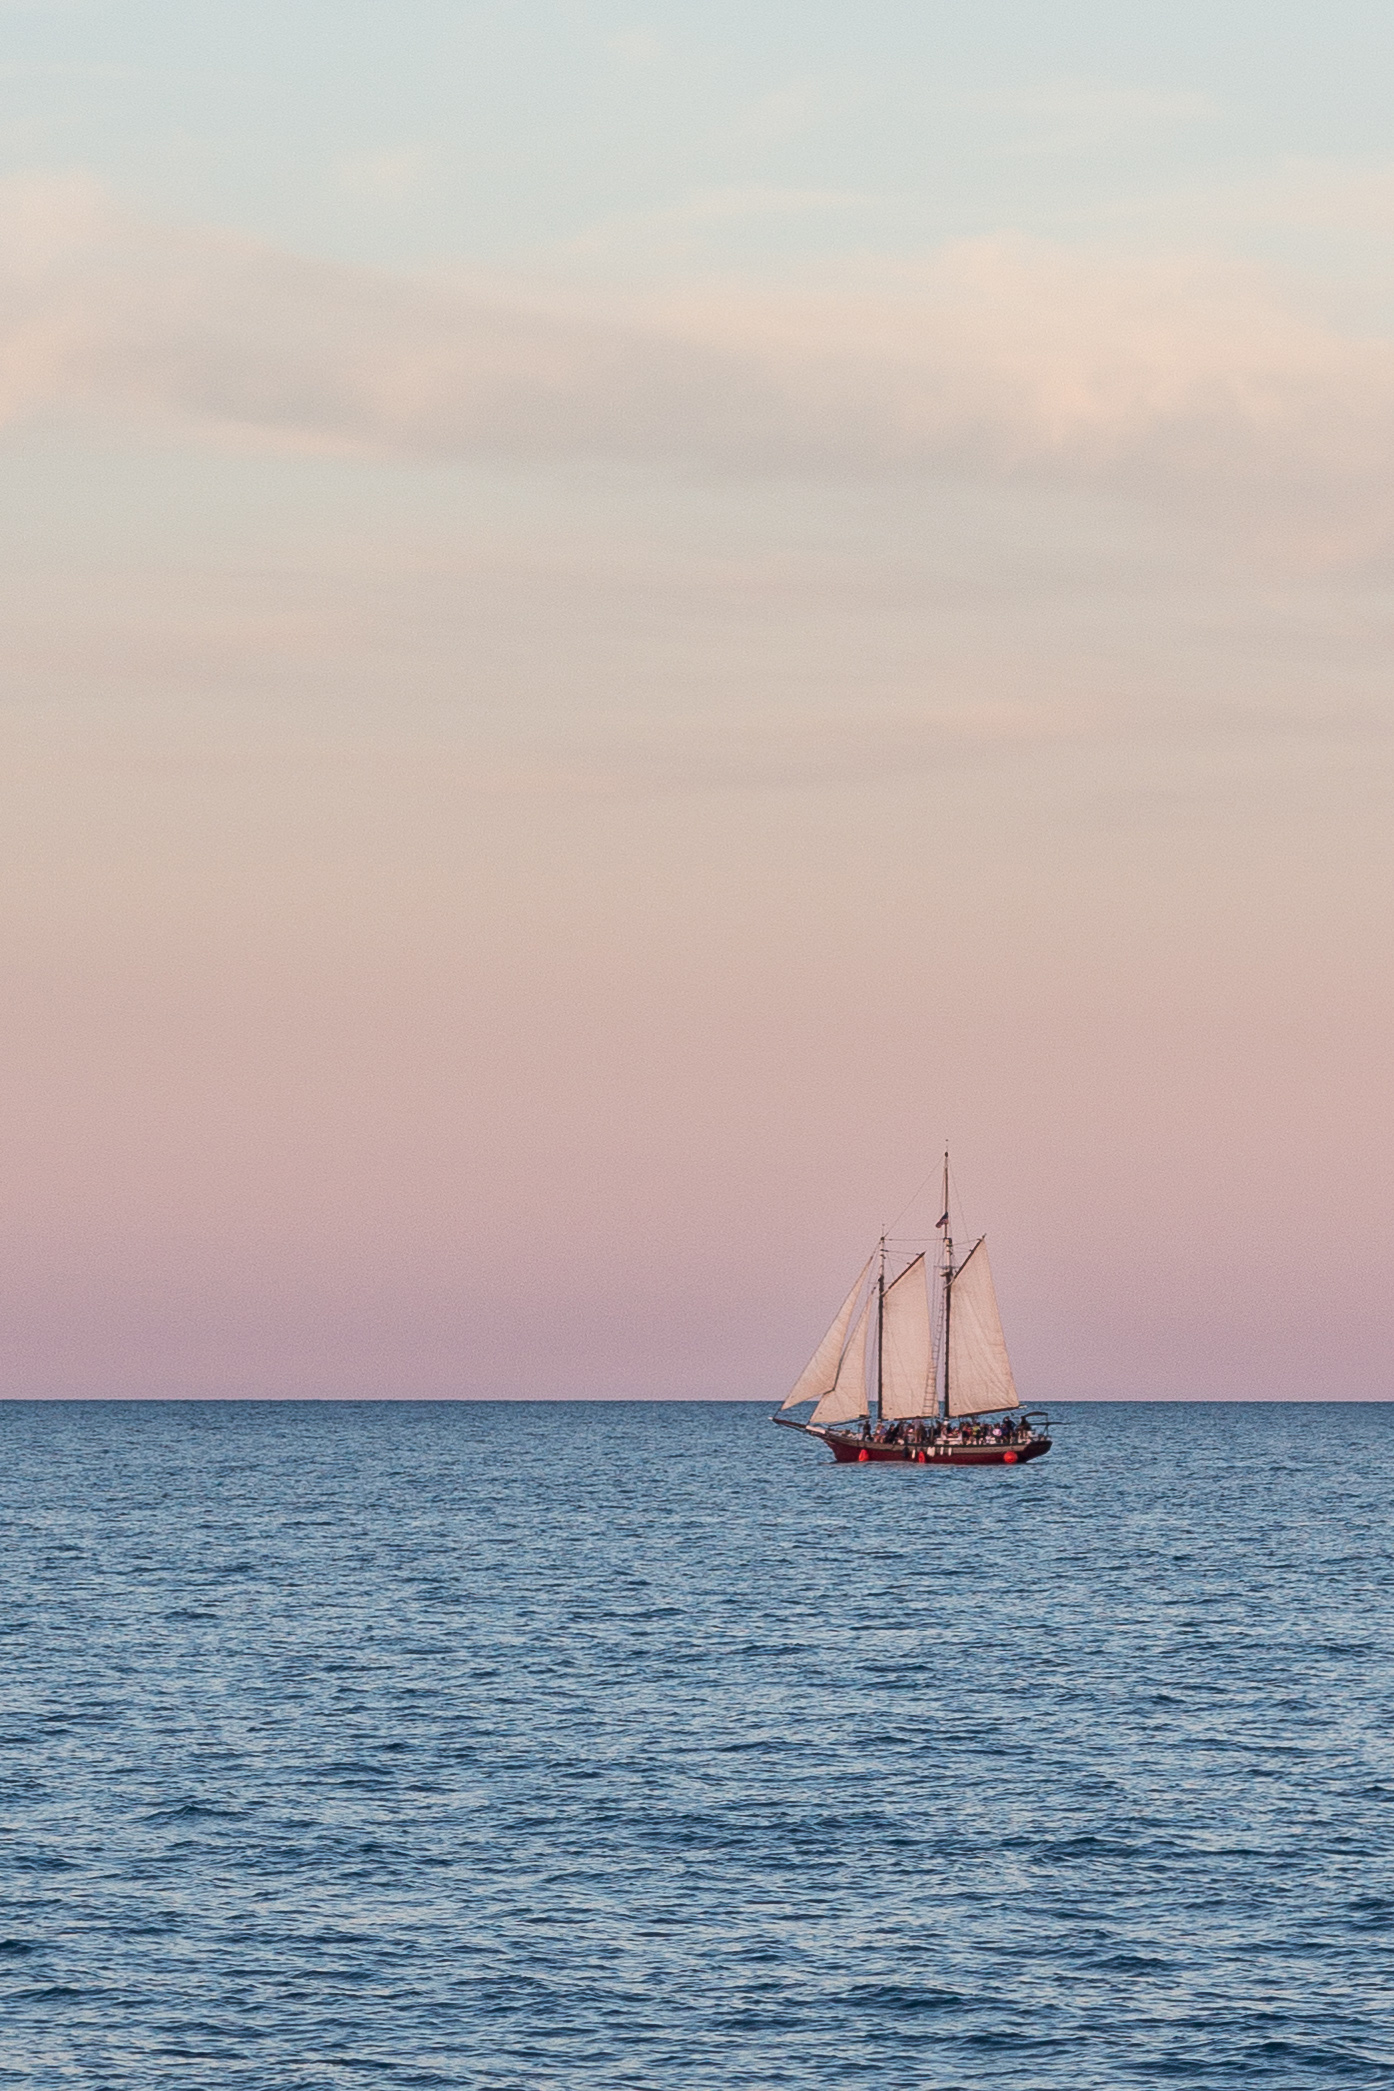 Tall Ship in the Kenosha Harbor 7.16.16 | https://www.roseclearfield.com